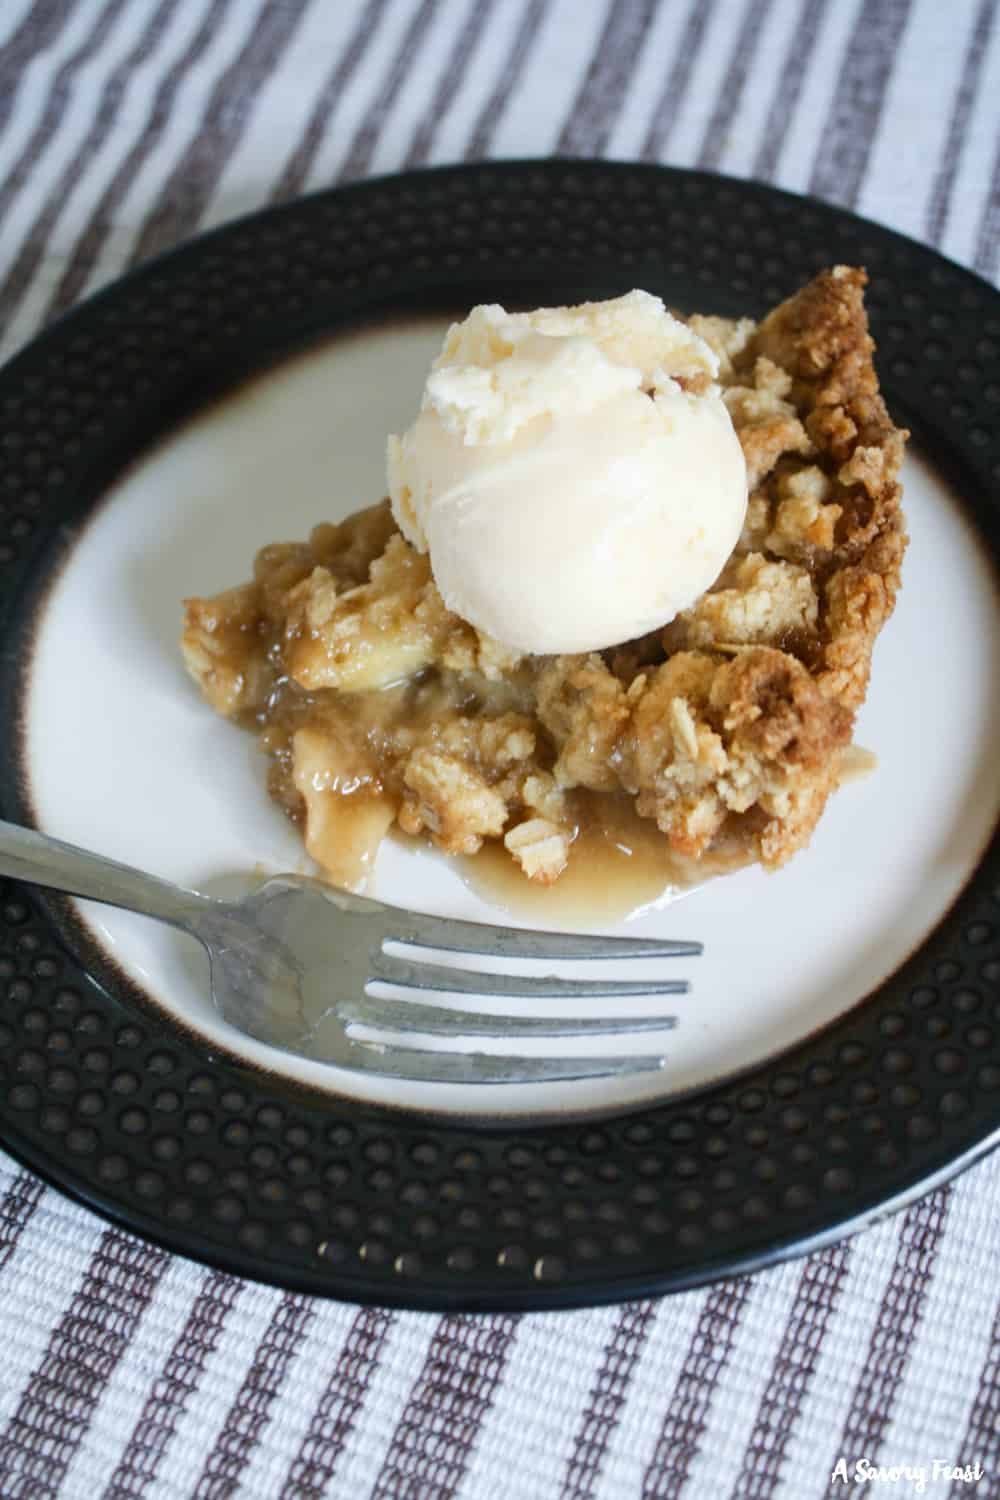 This Caramel Dutch Apple Pie is an update on an old classic. I used my favorite dutch apple pie recipe and added a homemade caramel sauce.